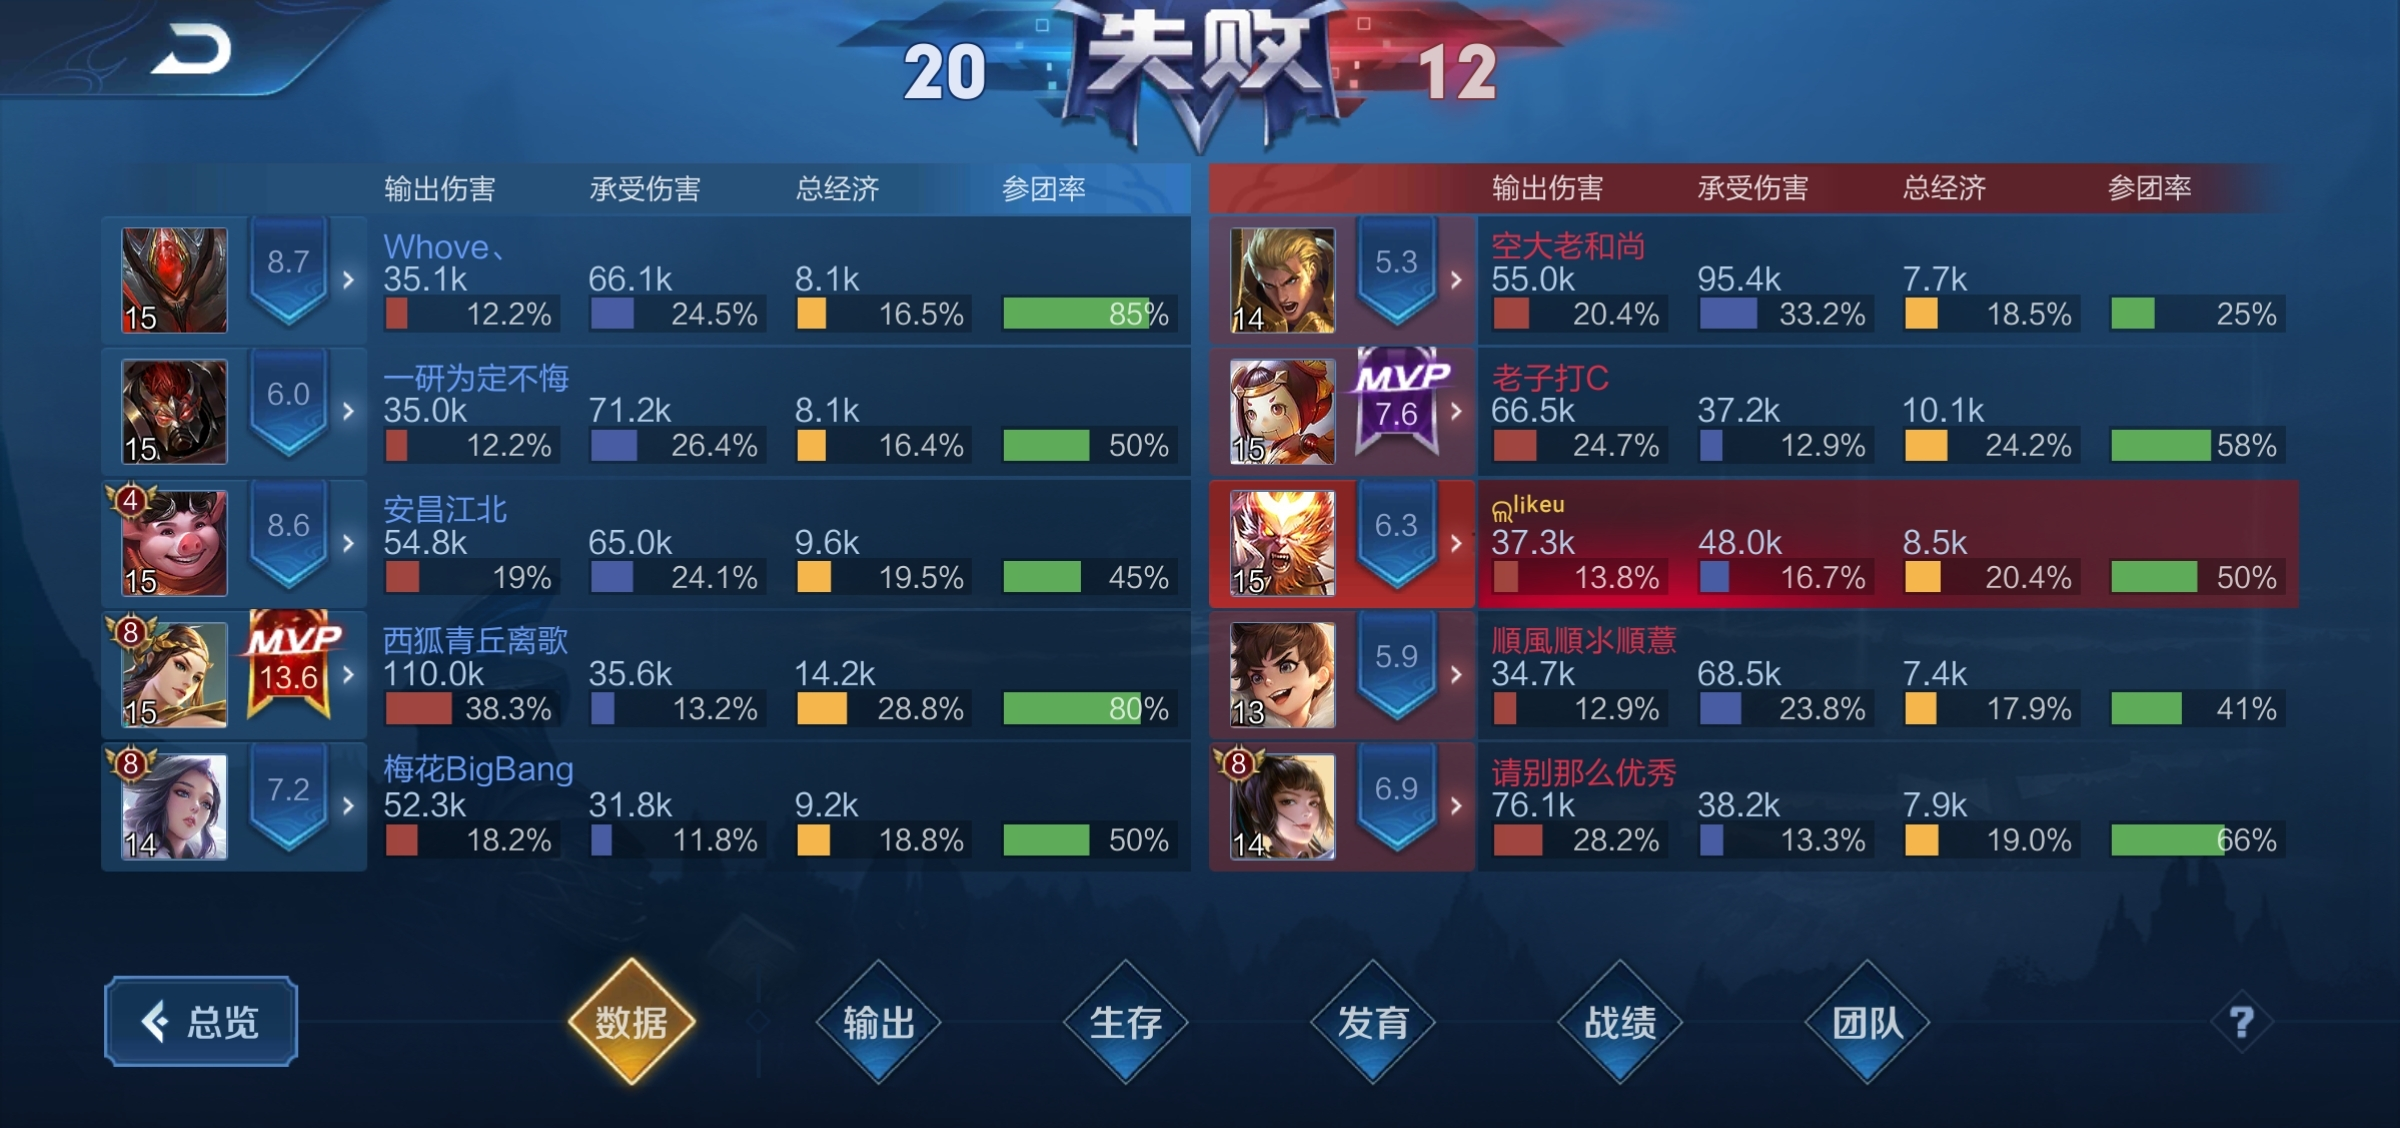 Screenshot_20200810_214419_com.tencent.tmgp.sgame.jpg